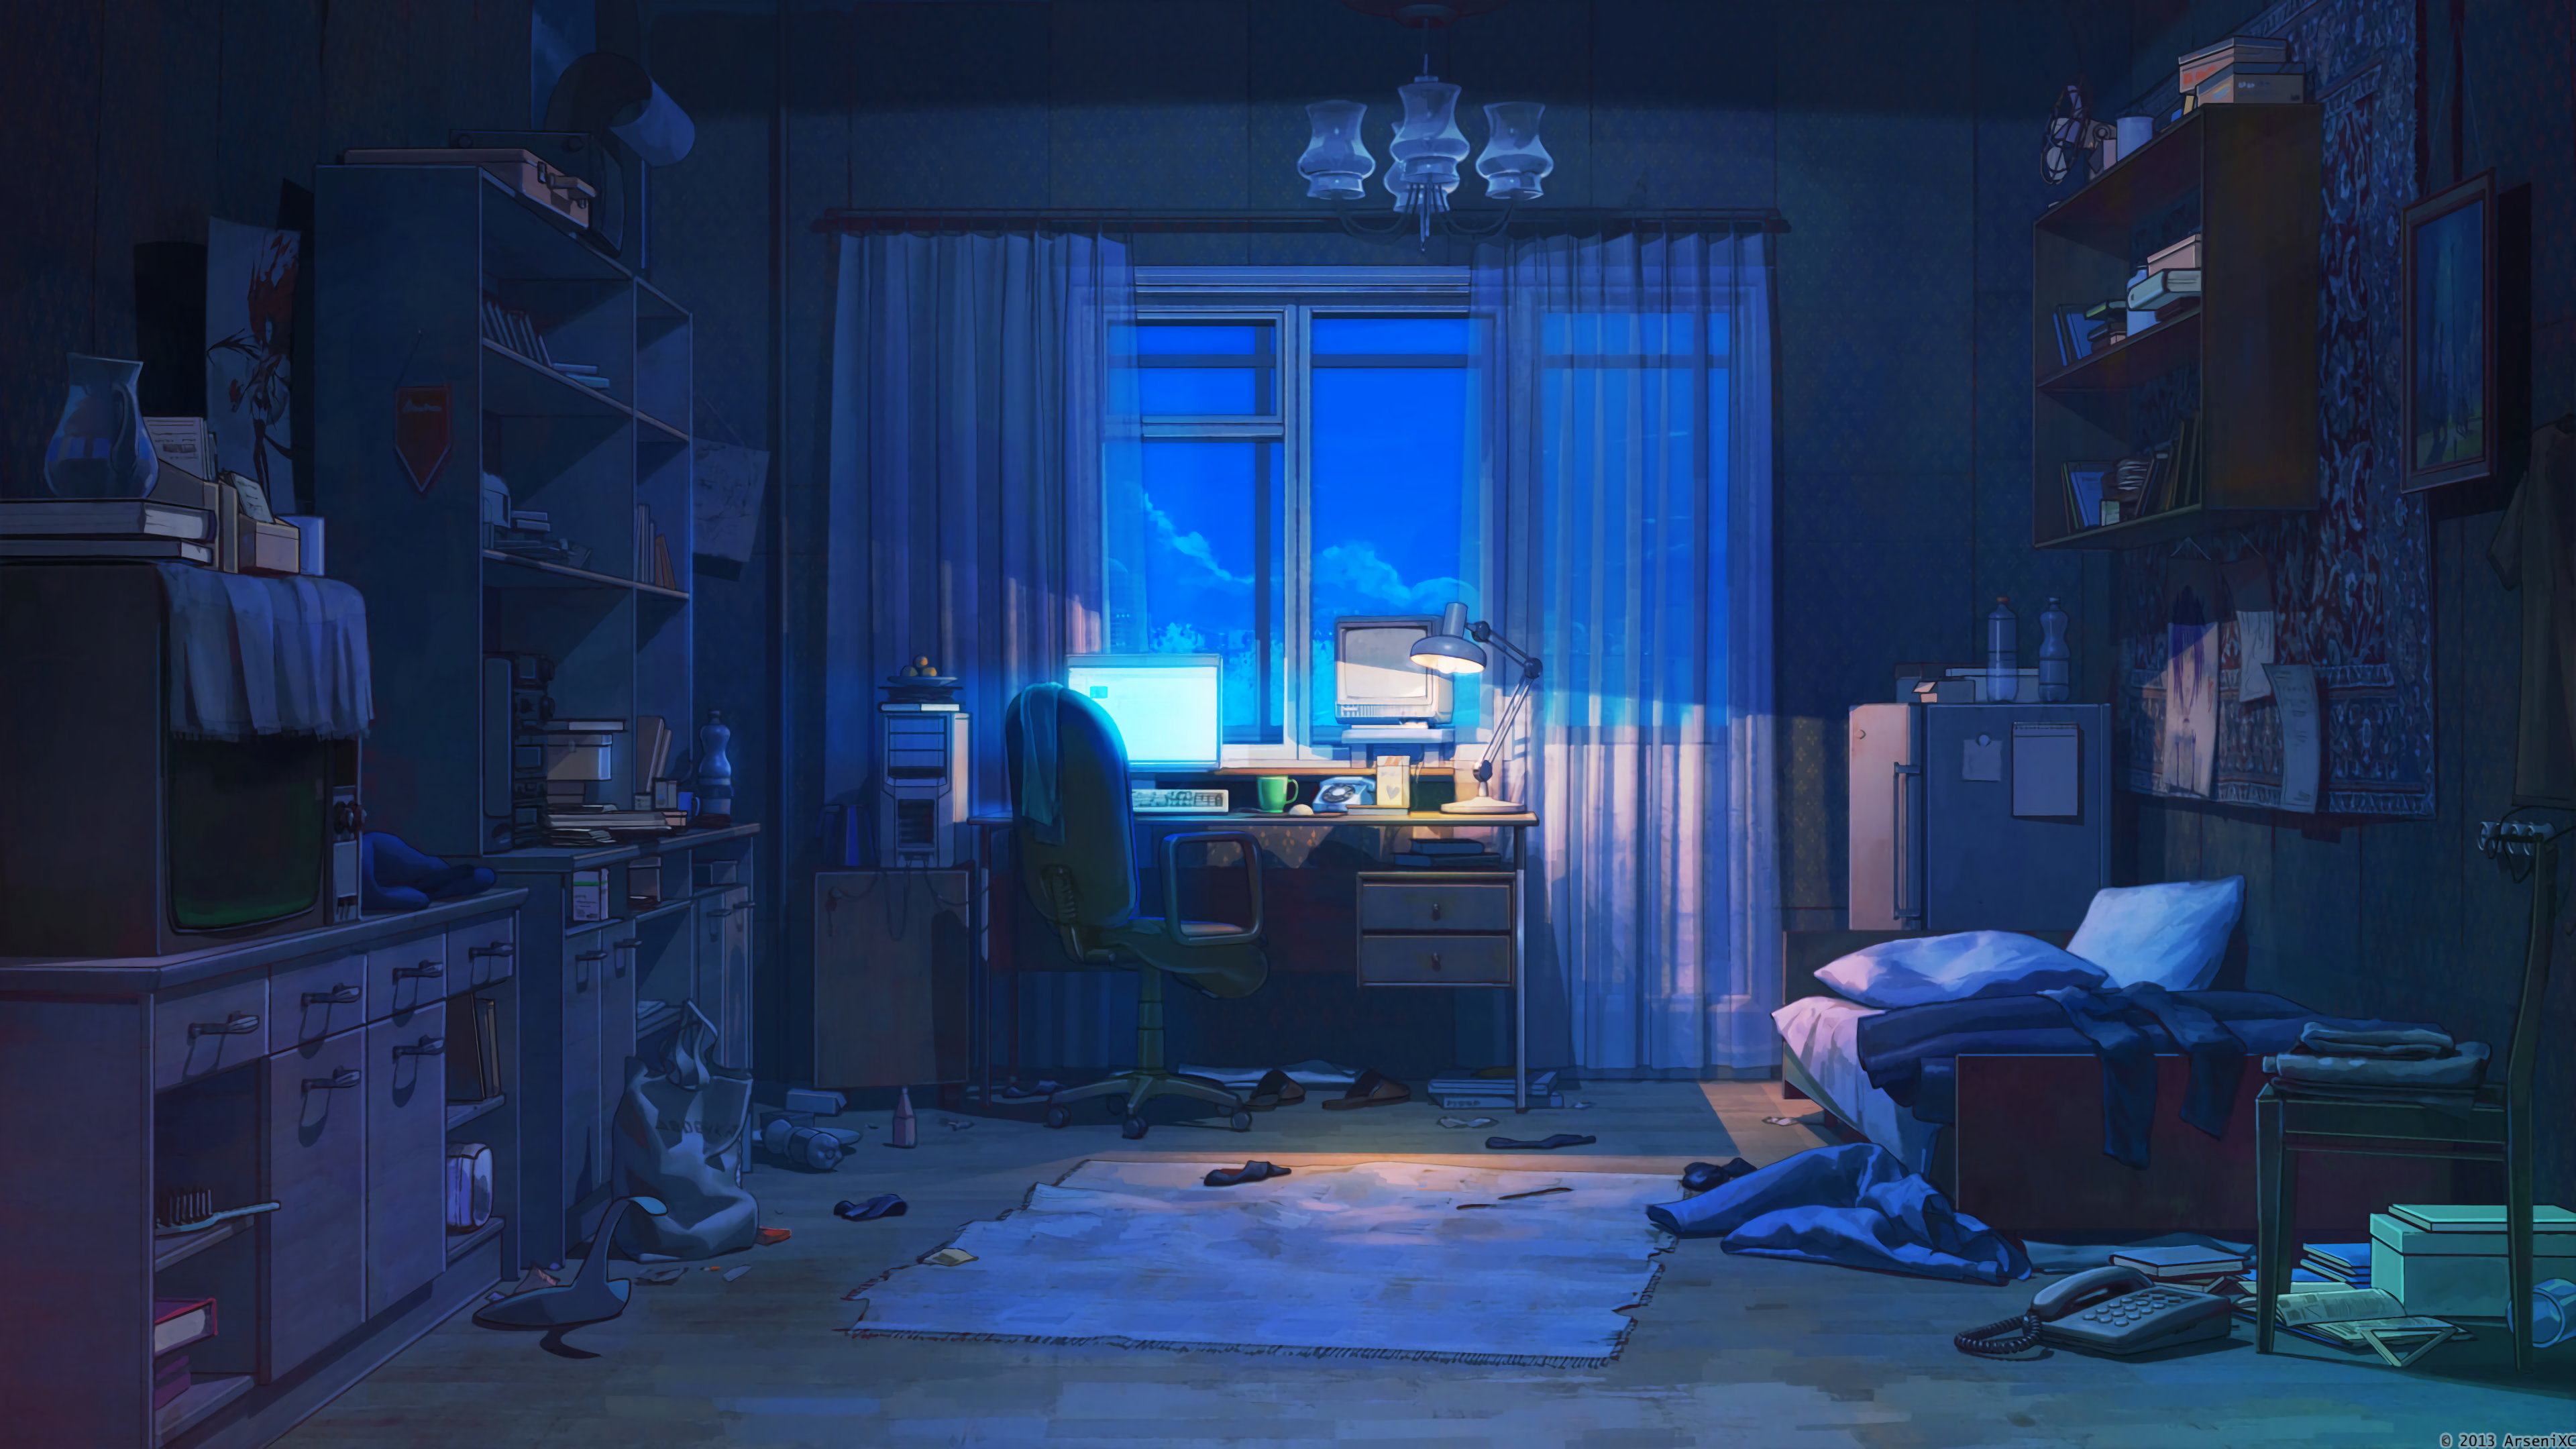 Anime 3840x2160 anime room interior dark Everlasting Summer